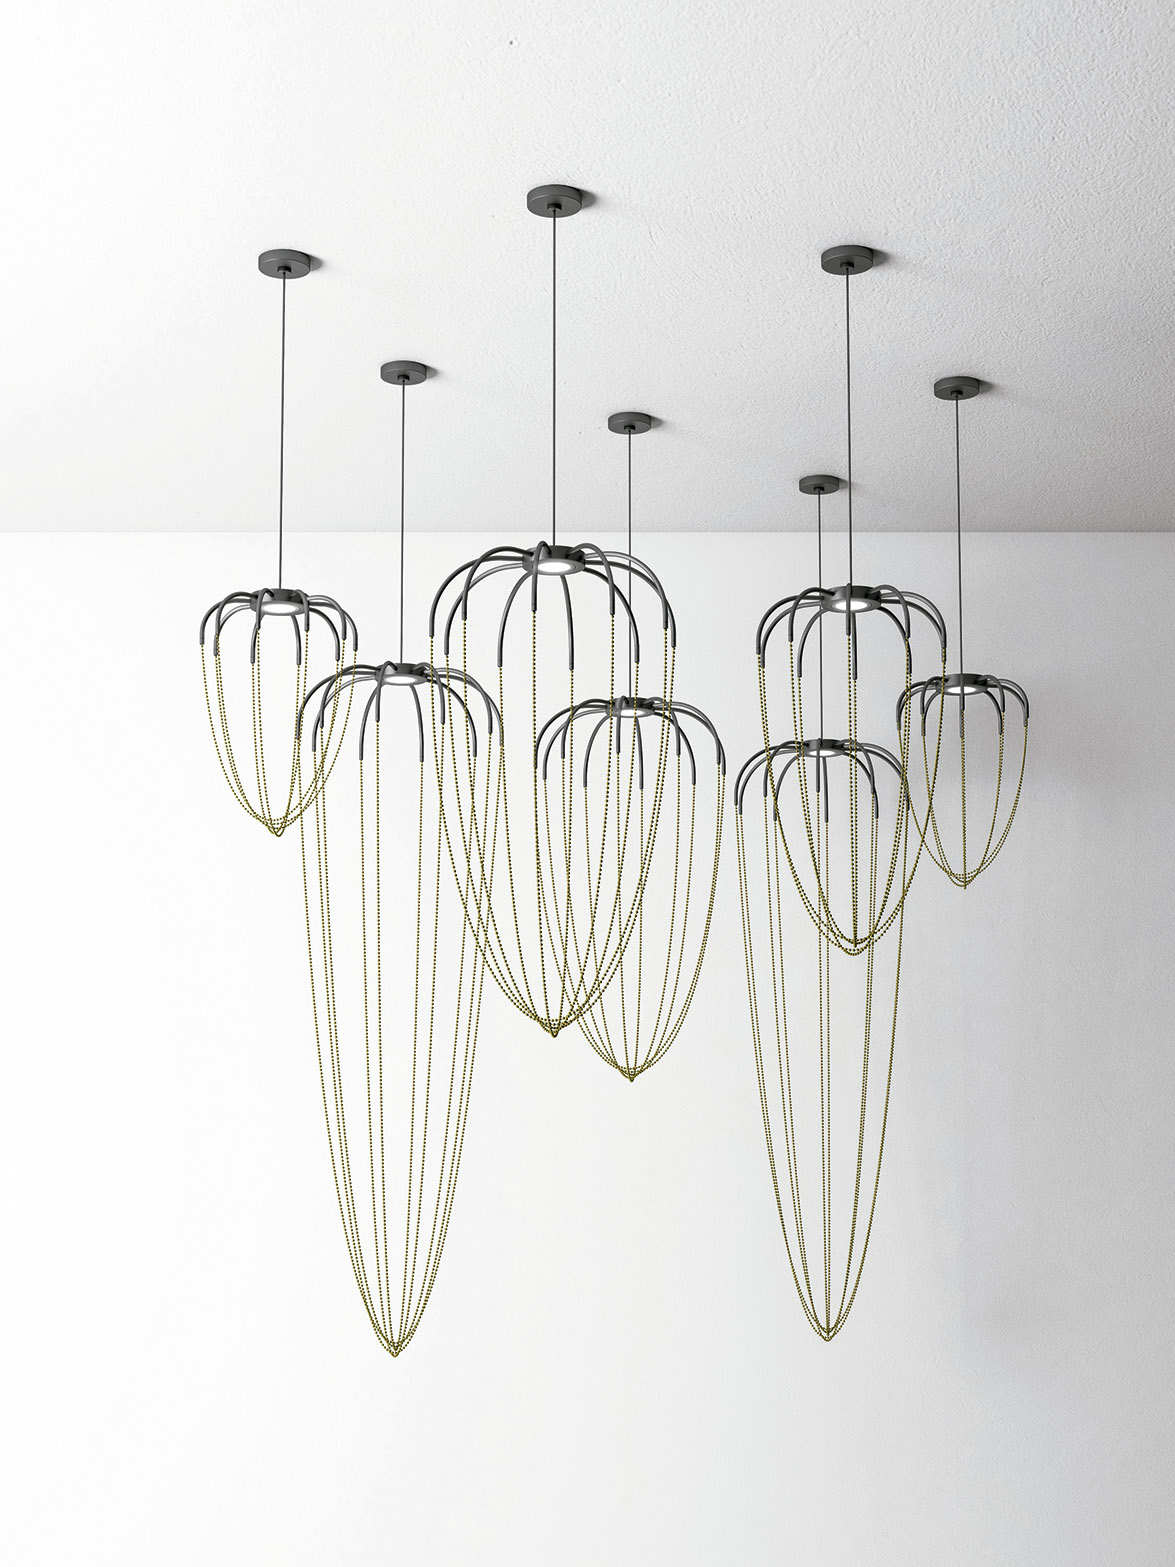 the lighting collection. Alysoid Of Axolight, The Lighting Collection Designed By Ryosuke Fukusada Inspired World Geometry And Architecture